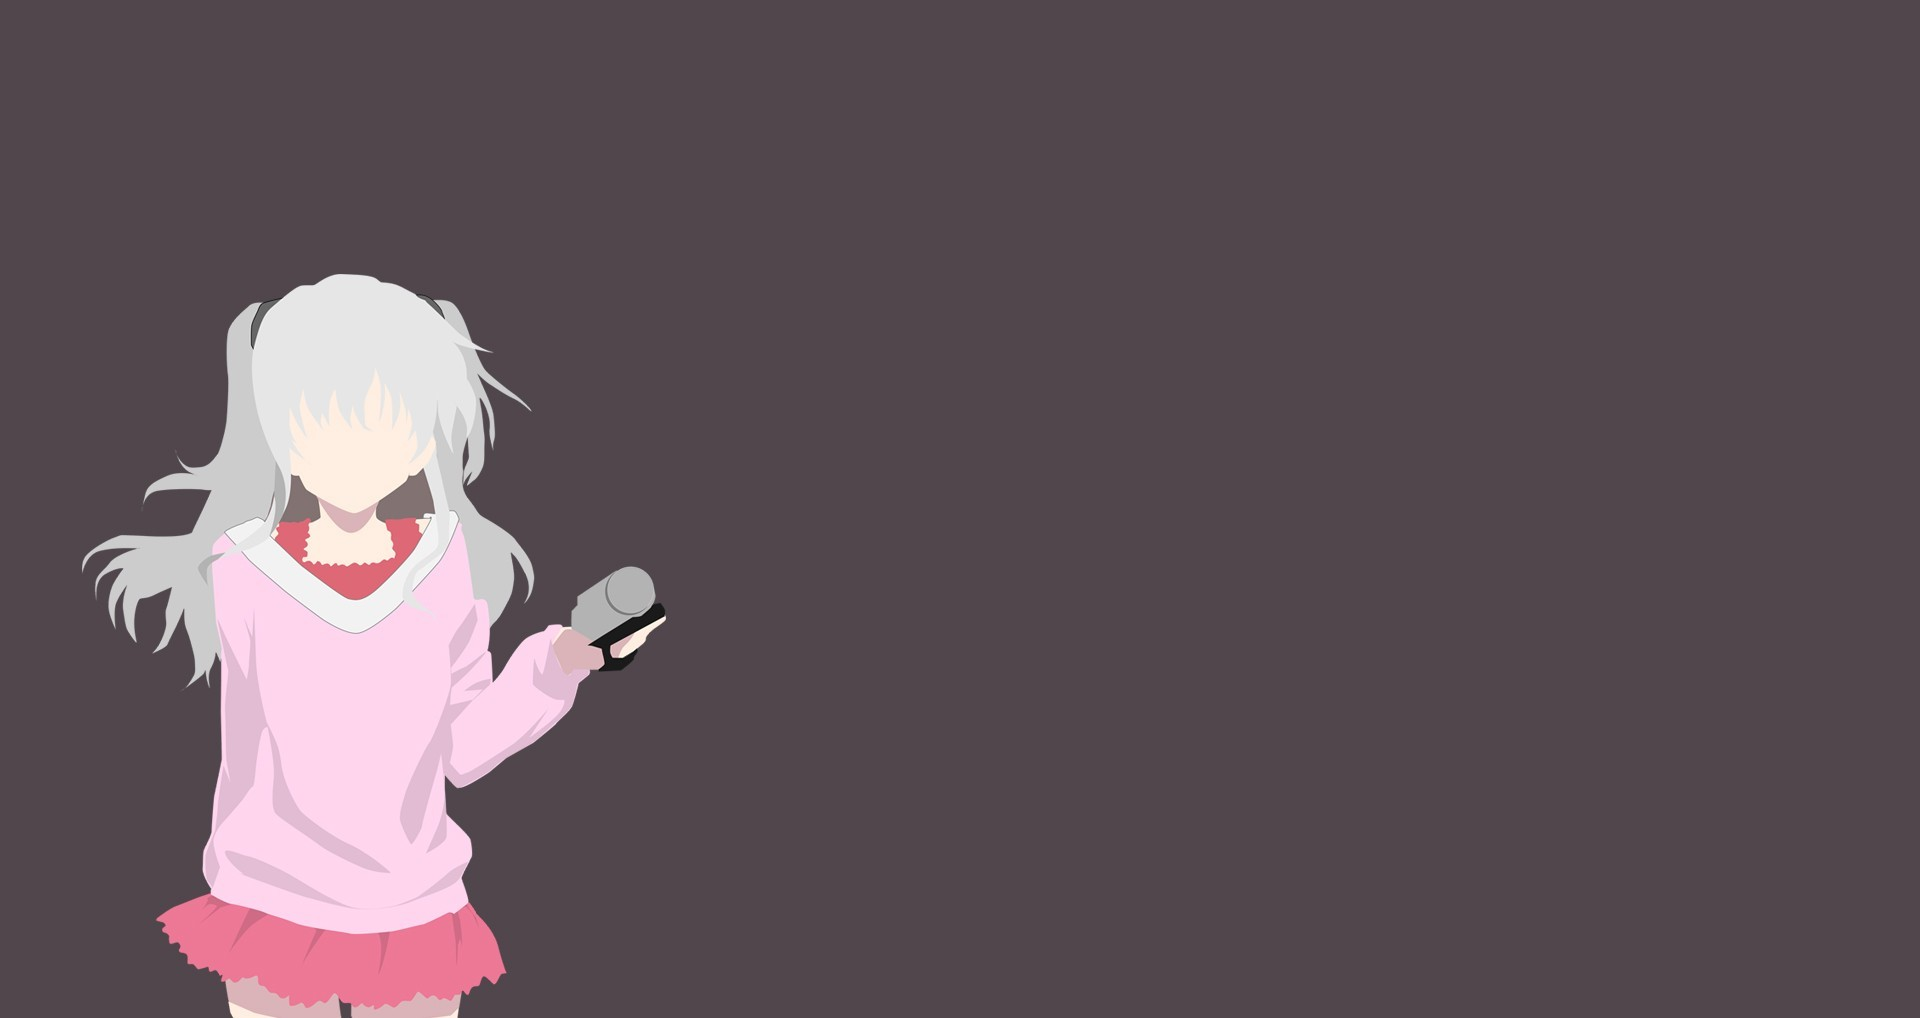 Chitoge Cute Wallpaper Tomori Nao Anime Vectors Charlotte Anime Wallpapers